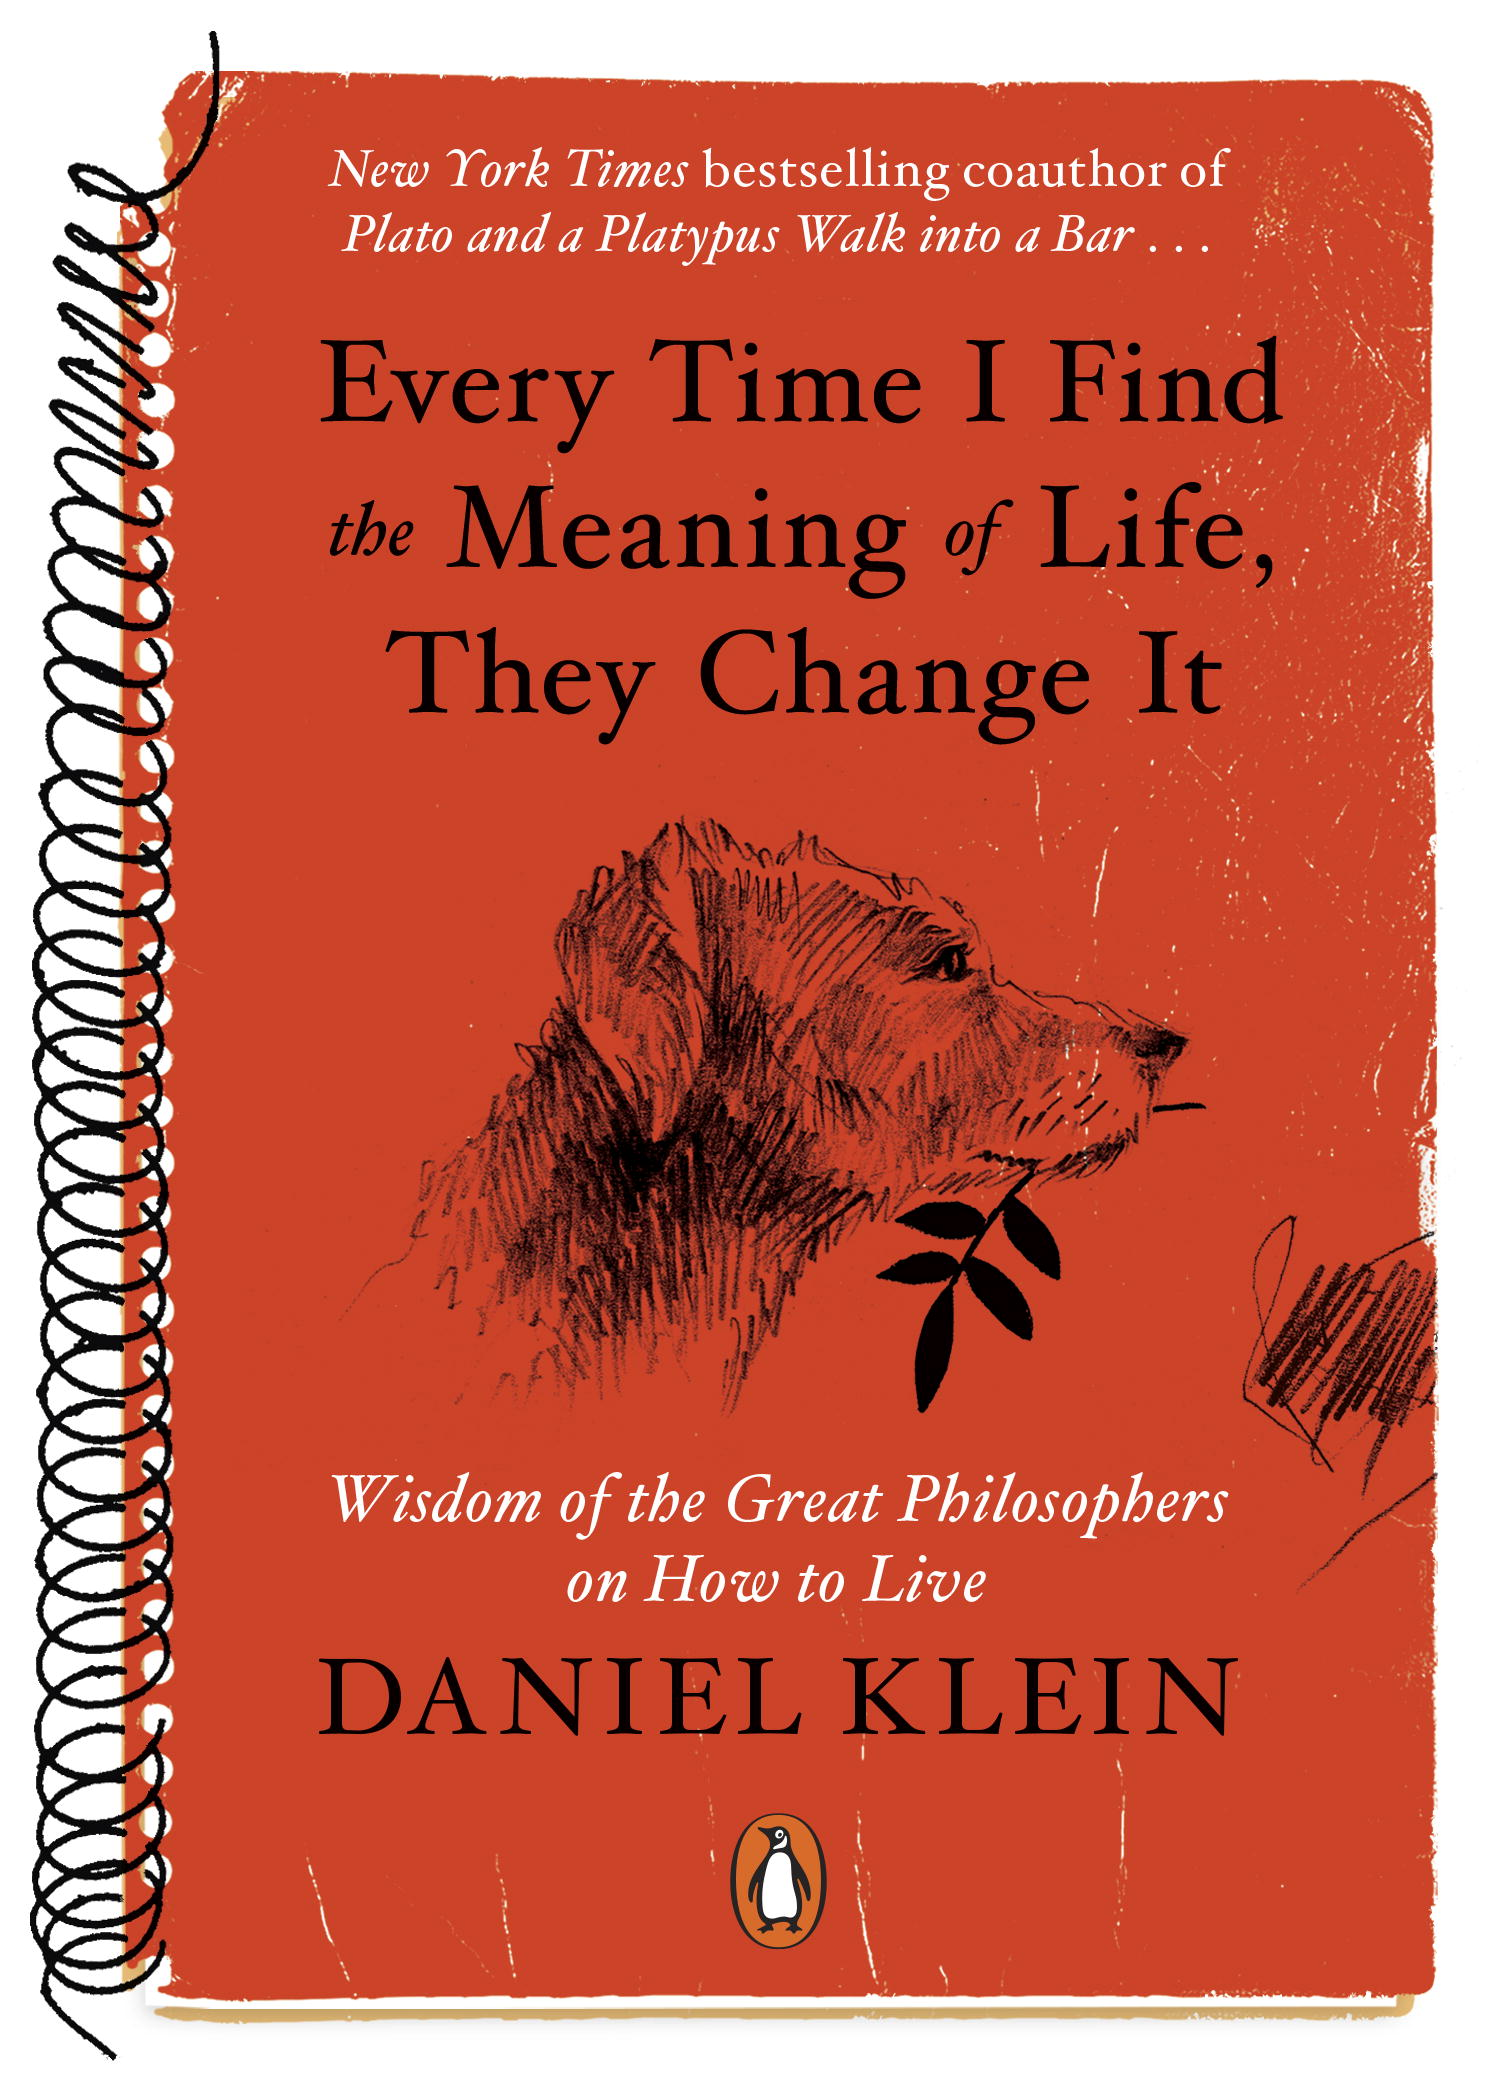 Philosophy essays on the meaning of life